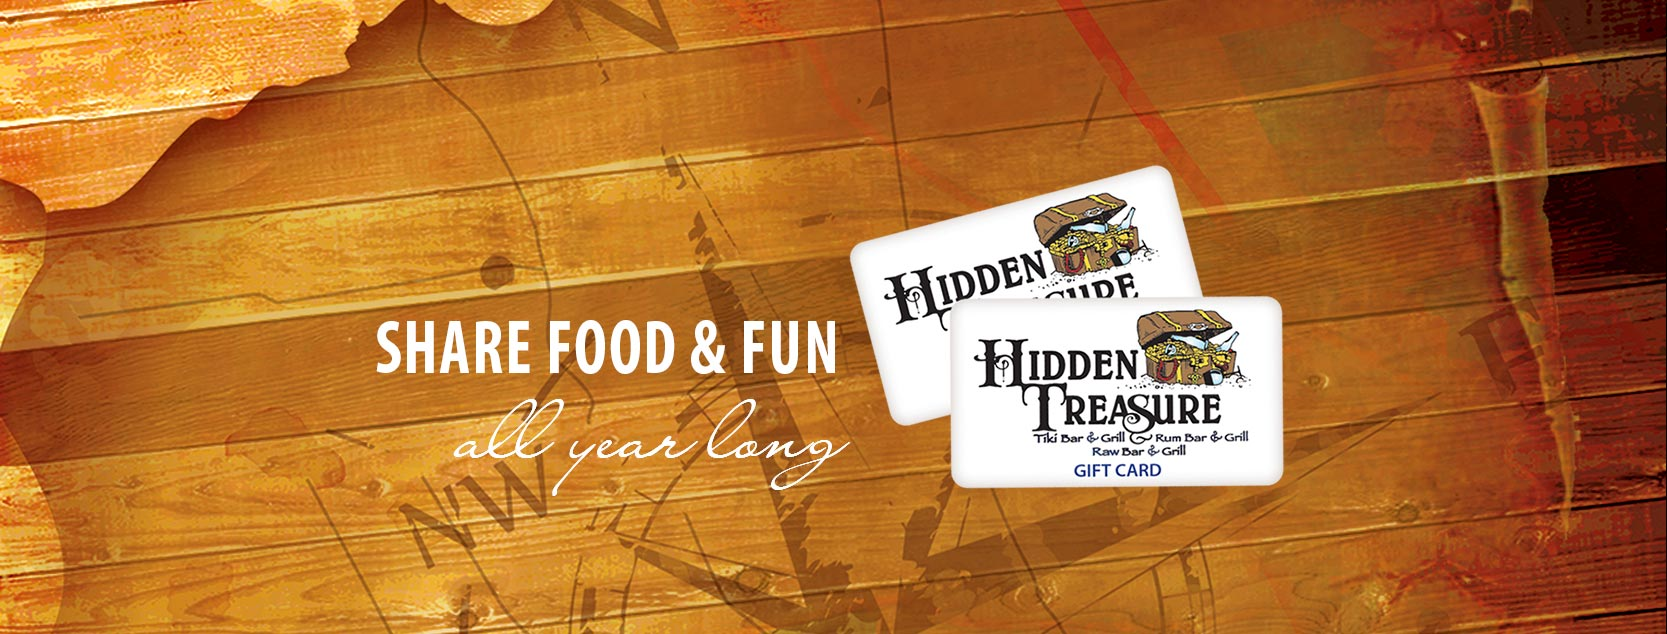 hidden treasure gift cards promo